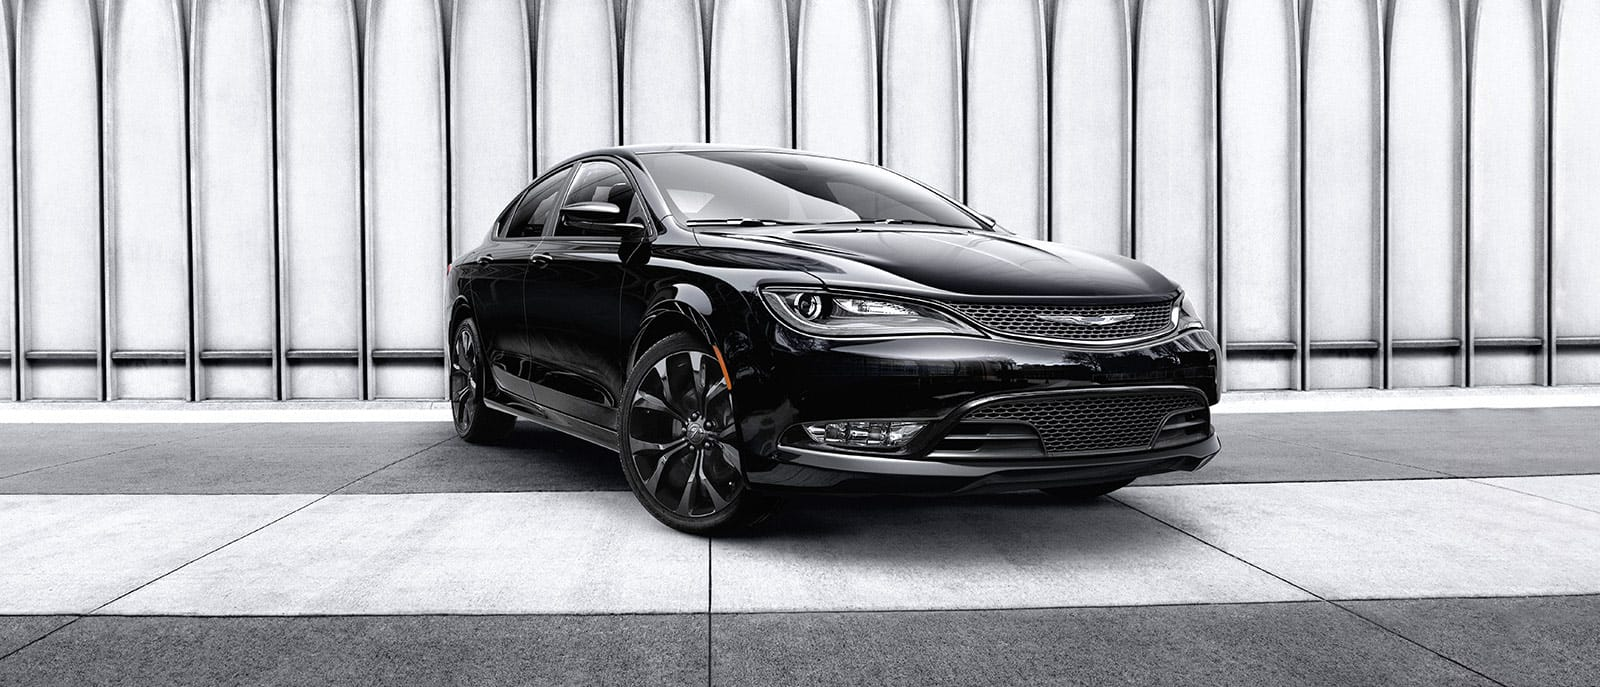 Chrysler 200: Pinch Protect Feature